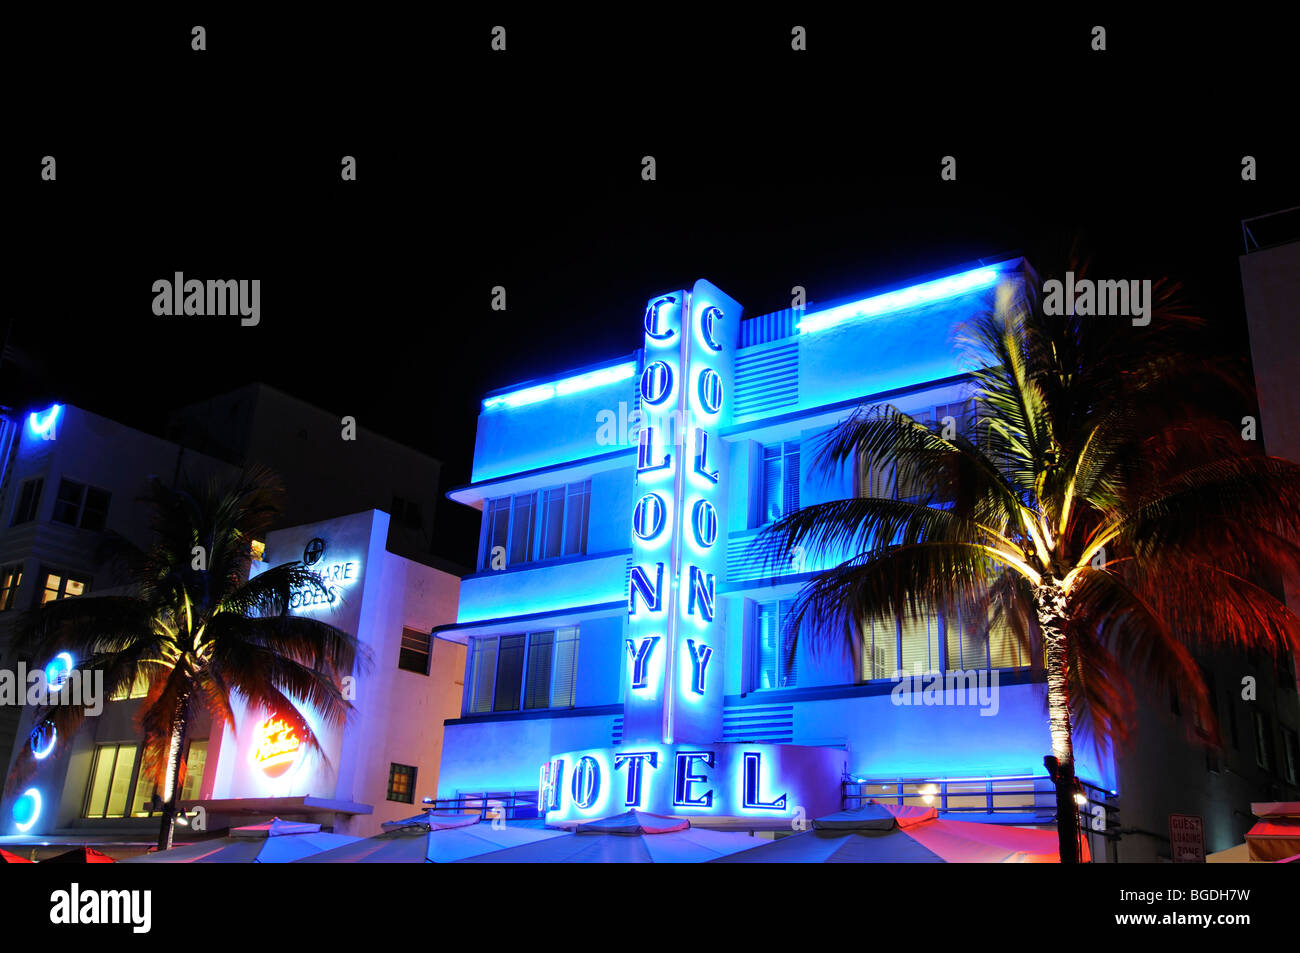 Colony Hotel, Ocean Drive, Miami South Beach, Art Deco district, Florida, USA - Stock Image